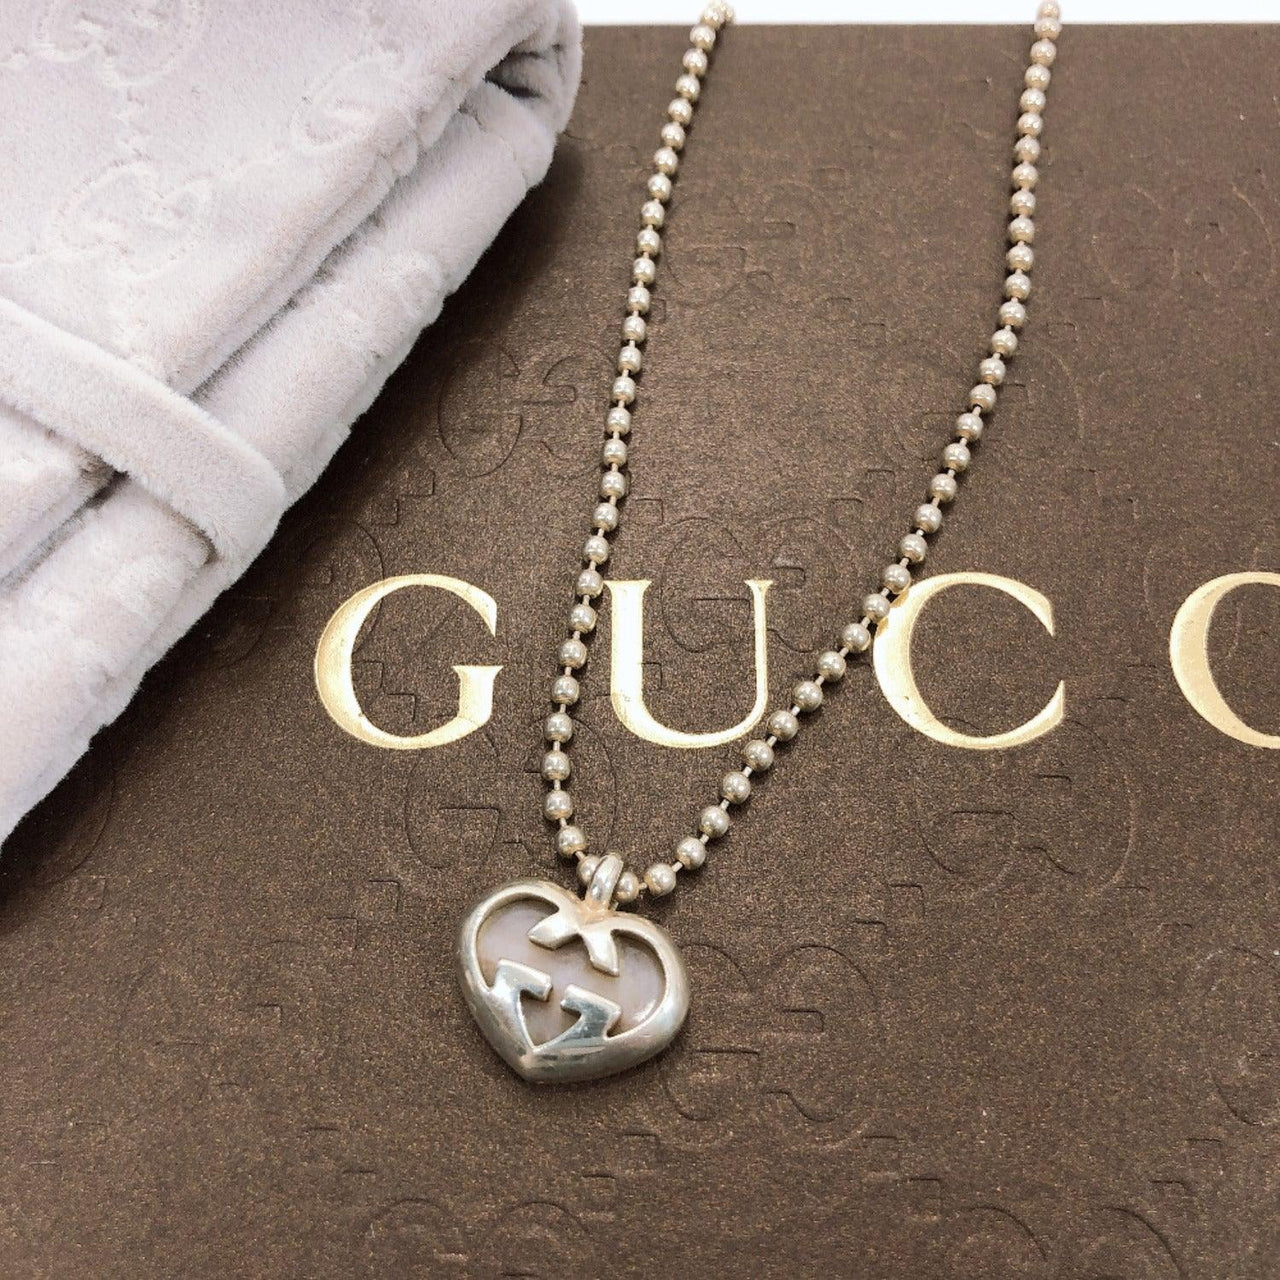 GUCCI Necklace Interlocking G heart Silver925 Silver Women Used